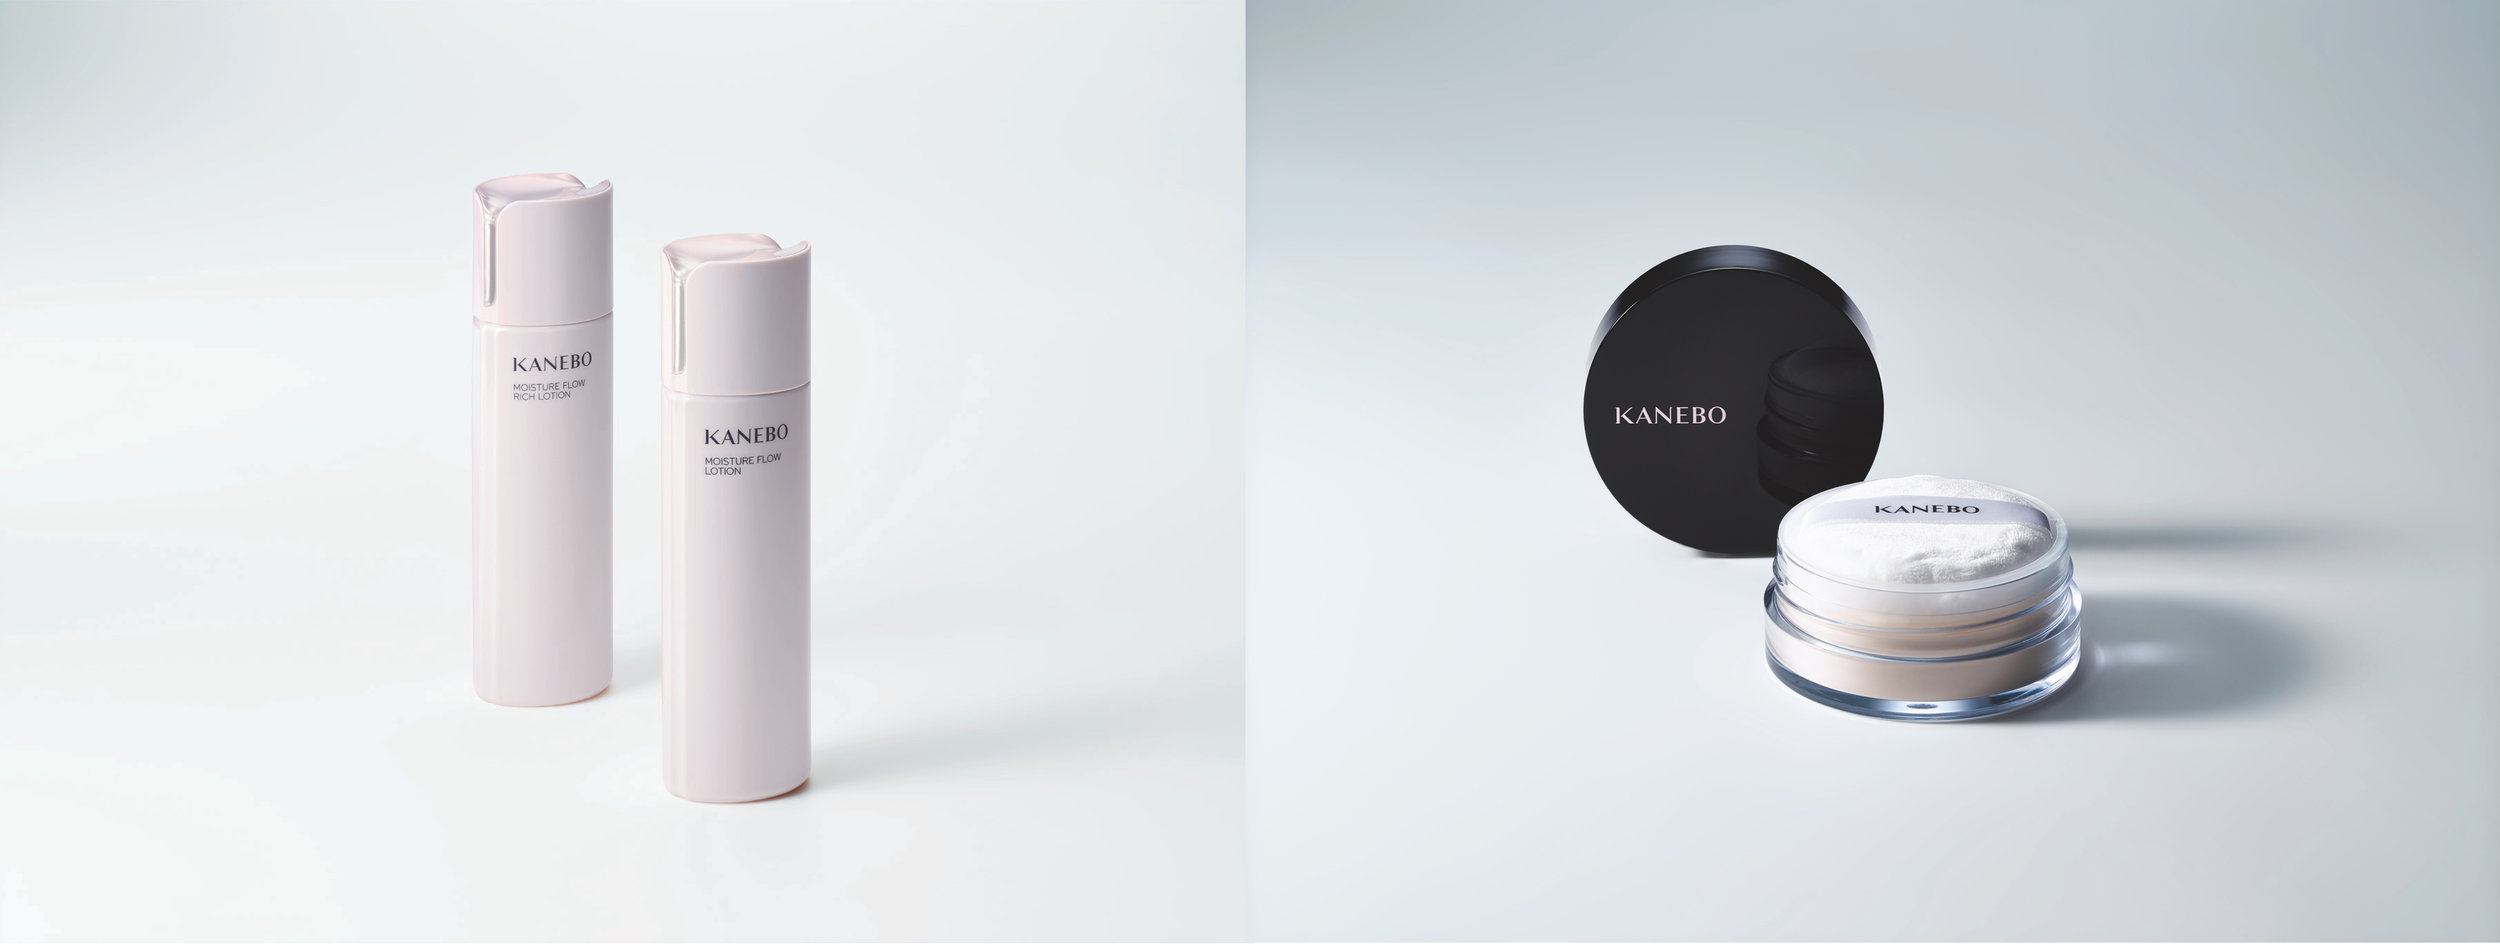 0bd9095b25 New Brand Alert  Kanebo is about making your life a masterpiece